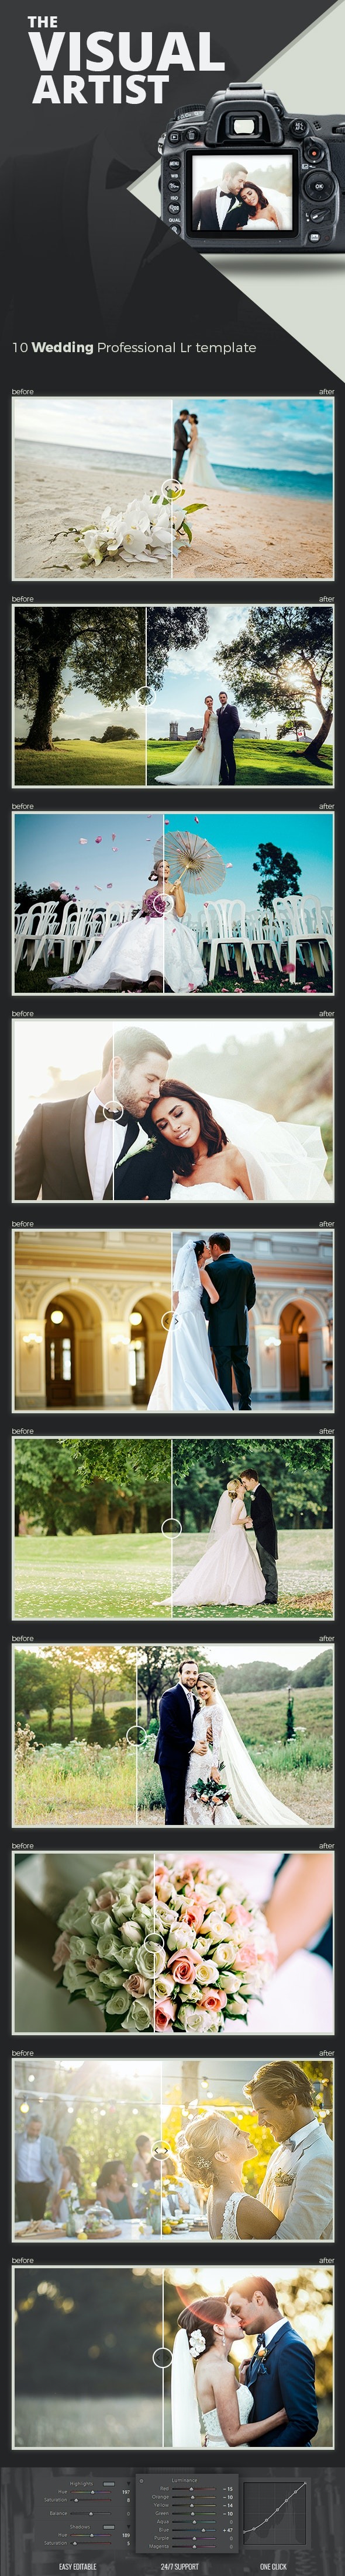 The Visual Artist Wedding Preset Series - Wedding Lightroom Presets